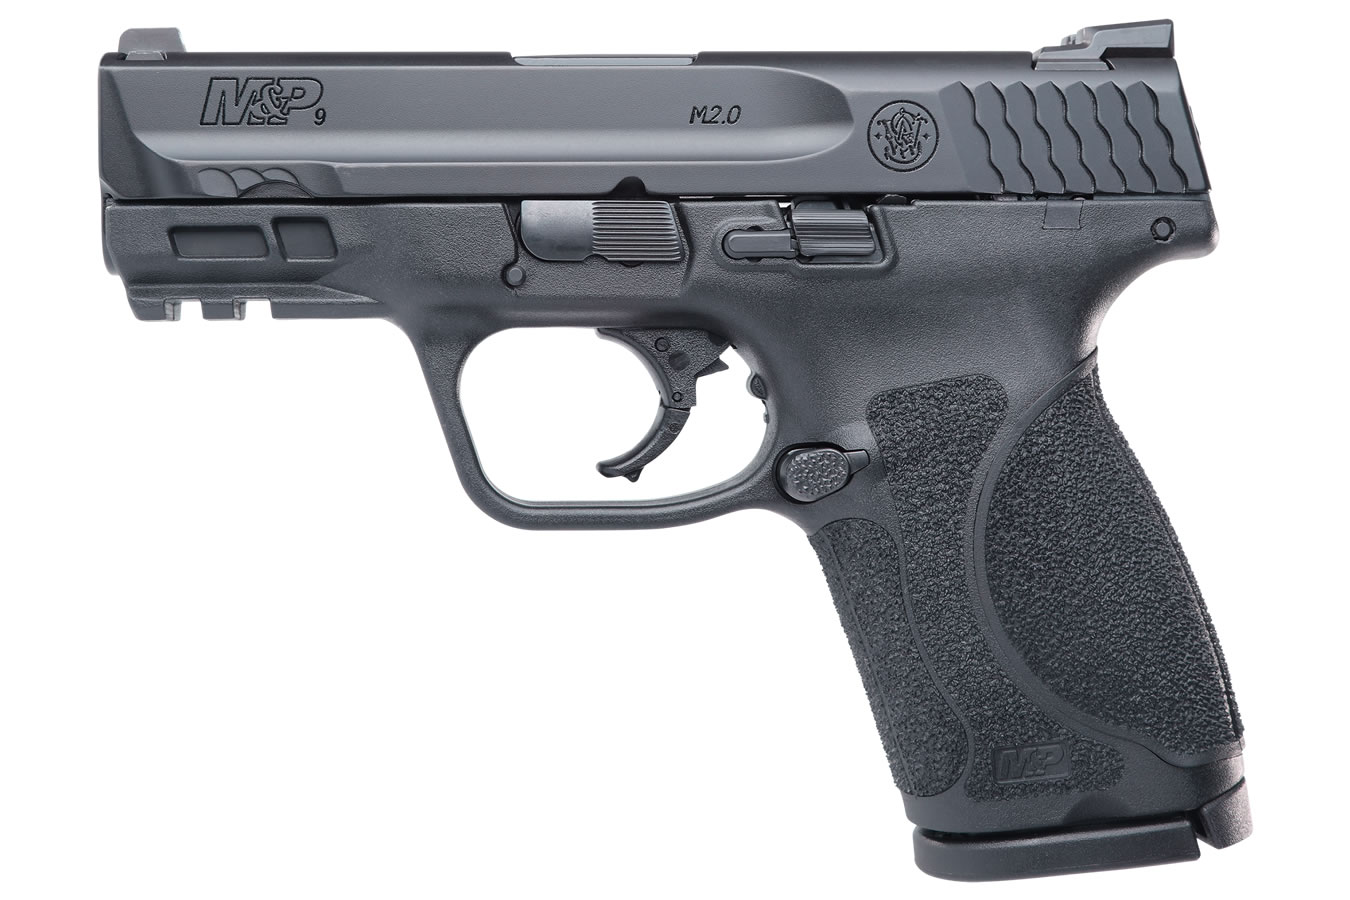 MP9 M2.0 COMPACT 9MM W/ NIGHT SIGHTS (LE)